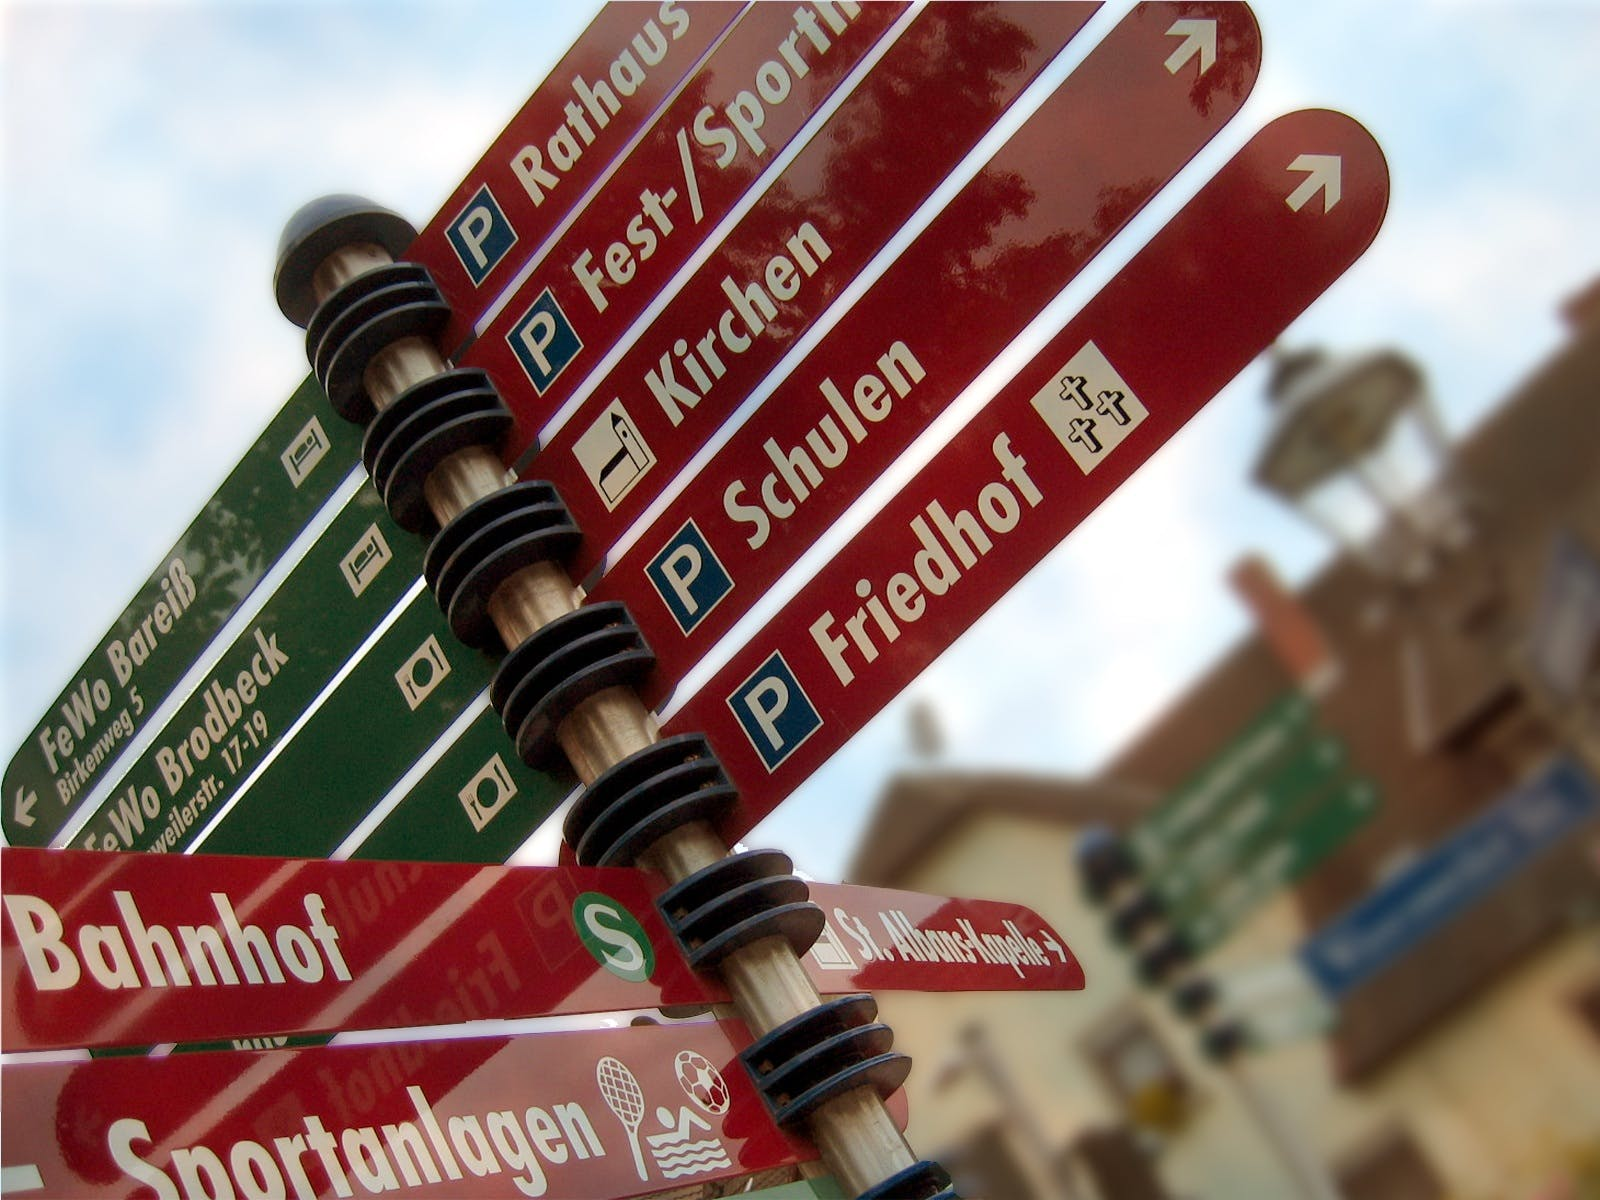 Red and Black Street Signages